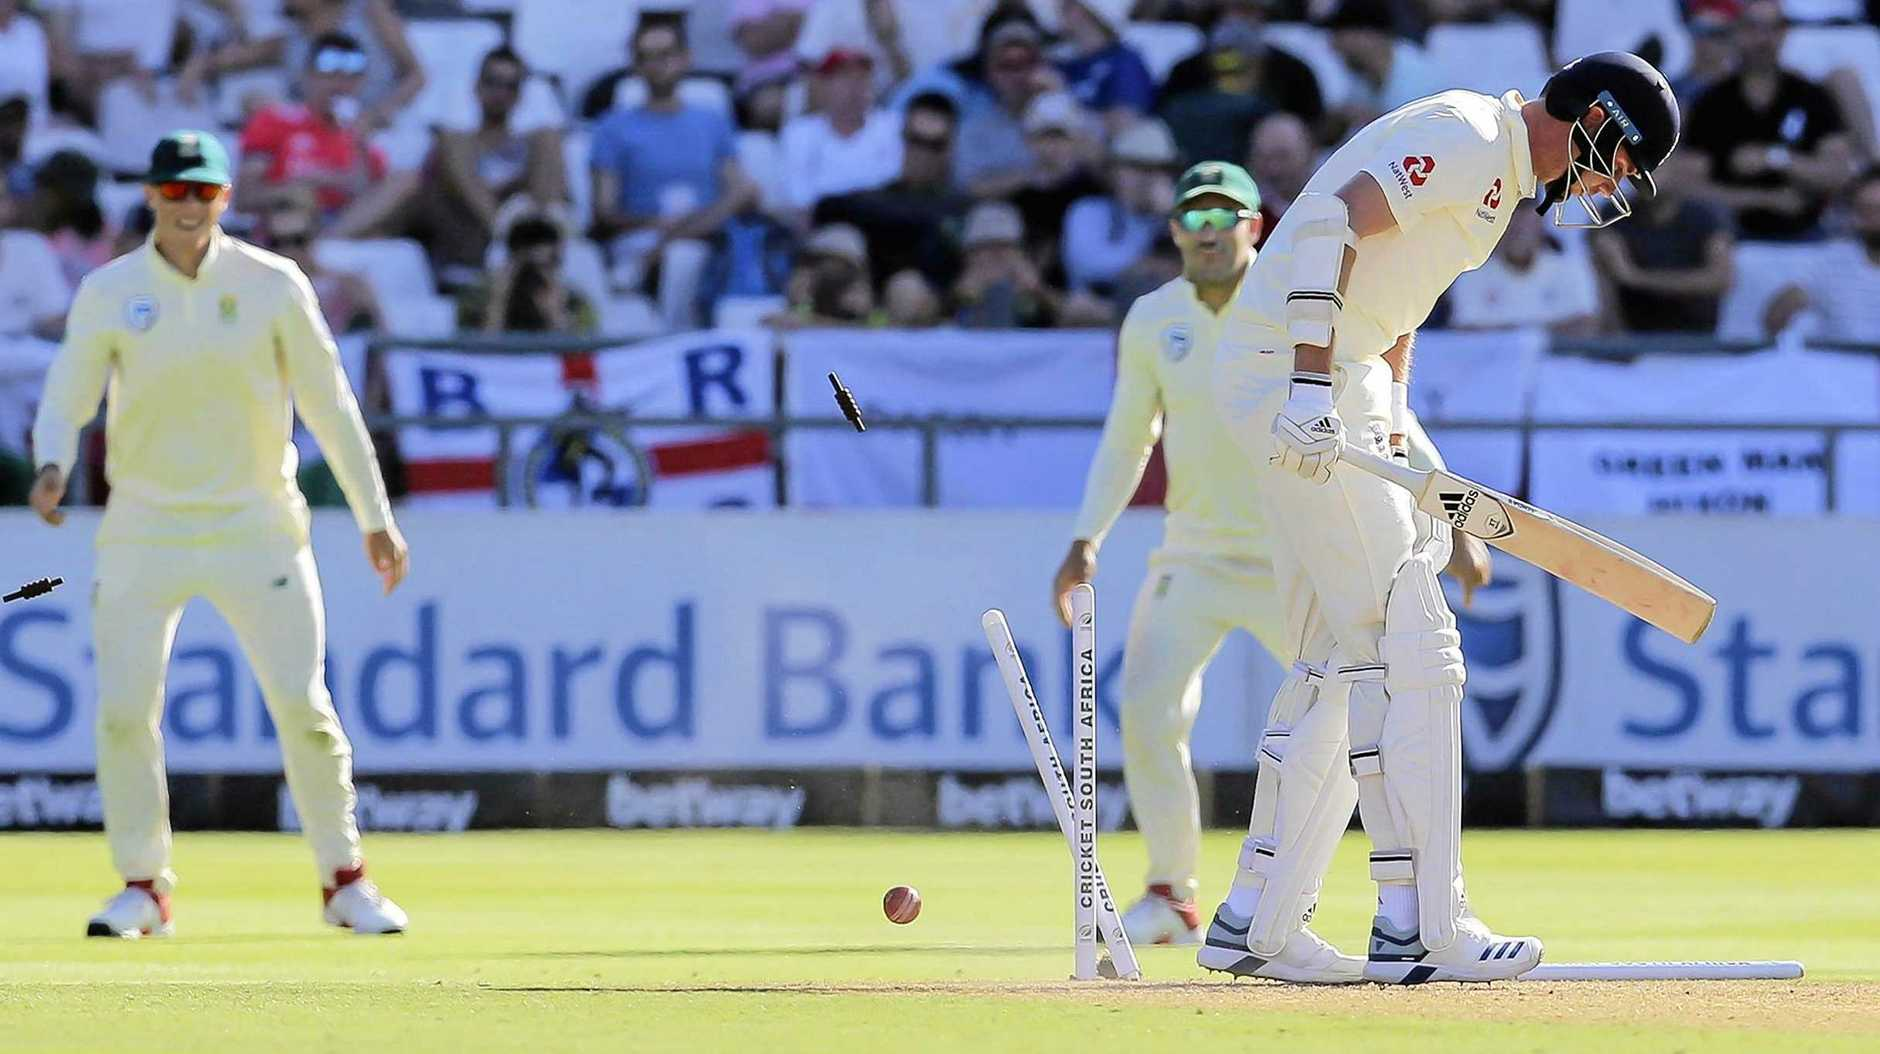 The stumps fly as England batsman Stuart Broad is bowled by South Africa's Kagiso Rabada on day one of the second Test in Cape Town. Picture: Halden Krog/AP